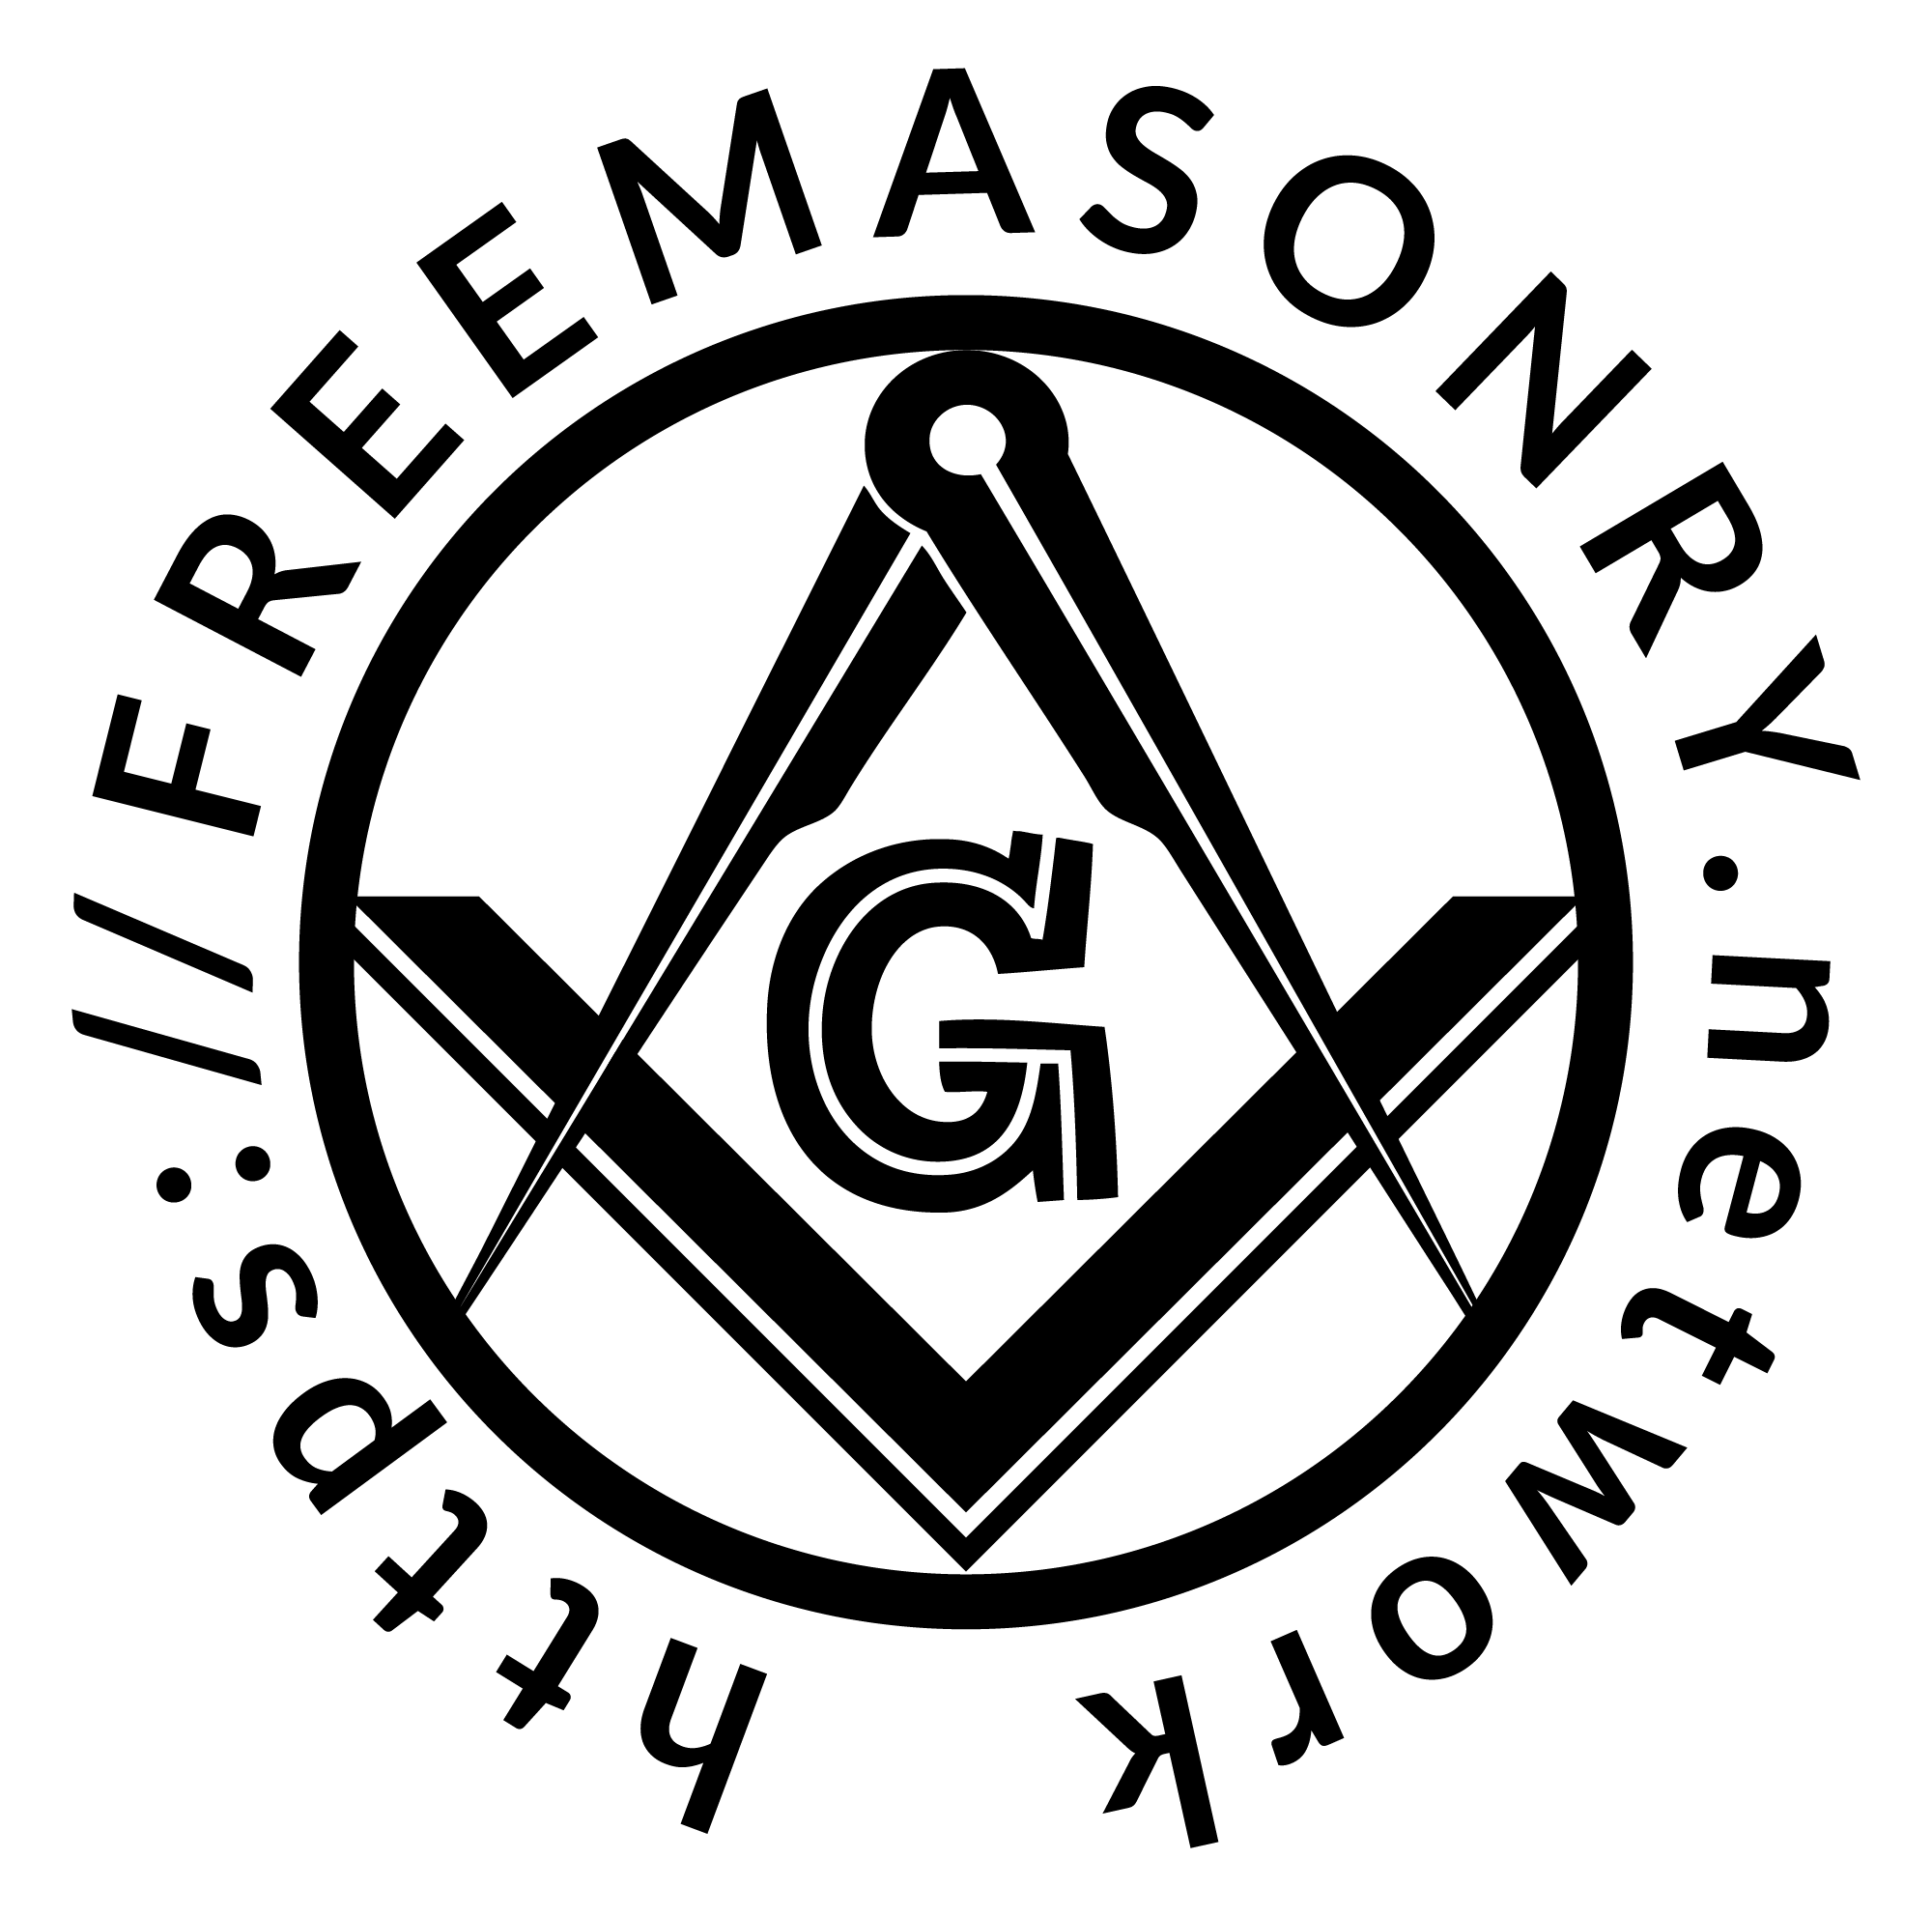 Jacob's Ladder - a new Masonic Roundtable episode